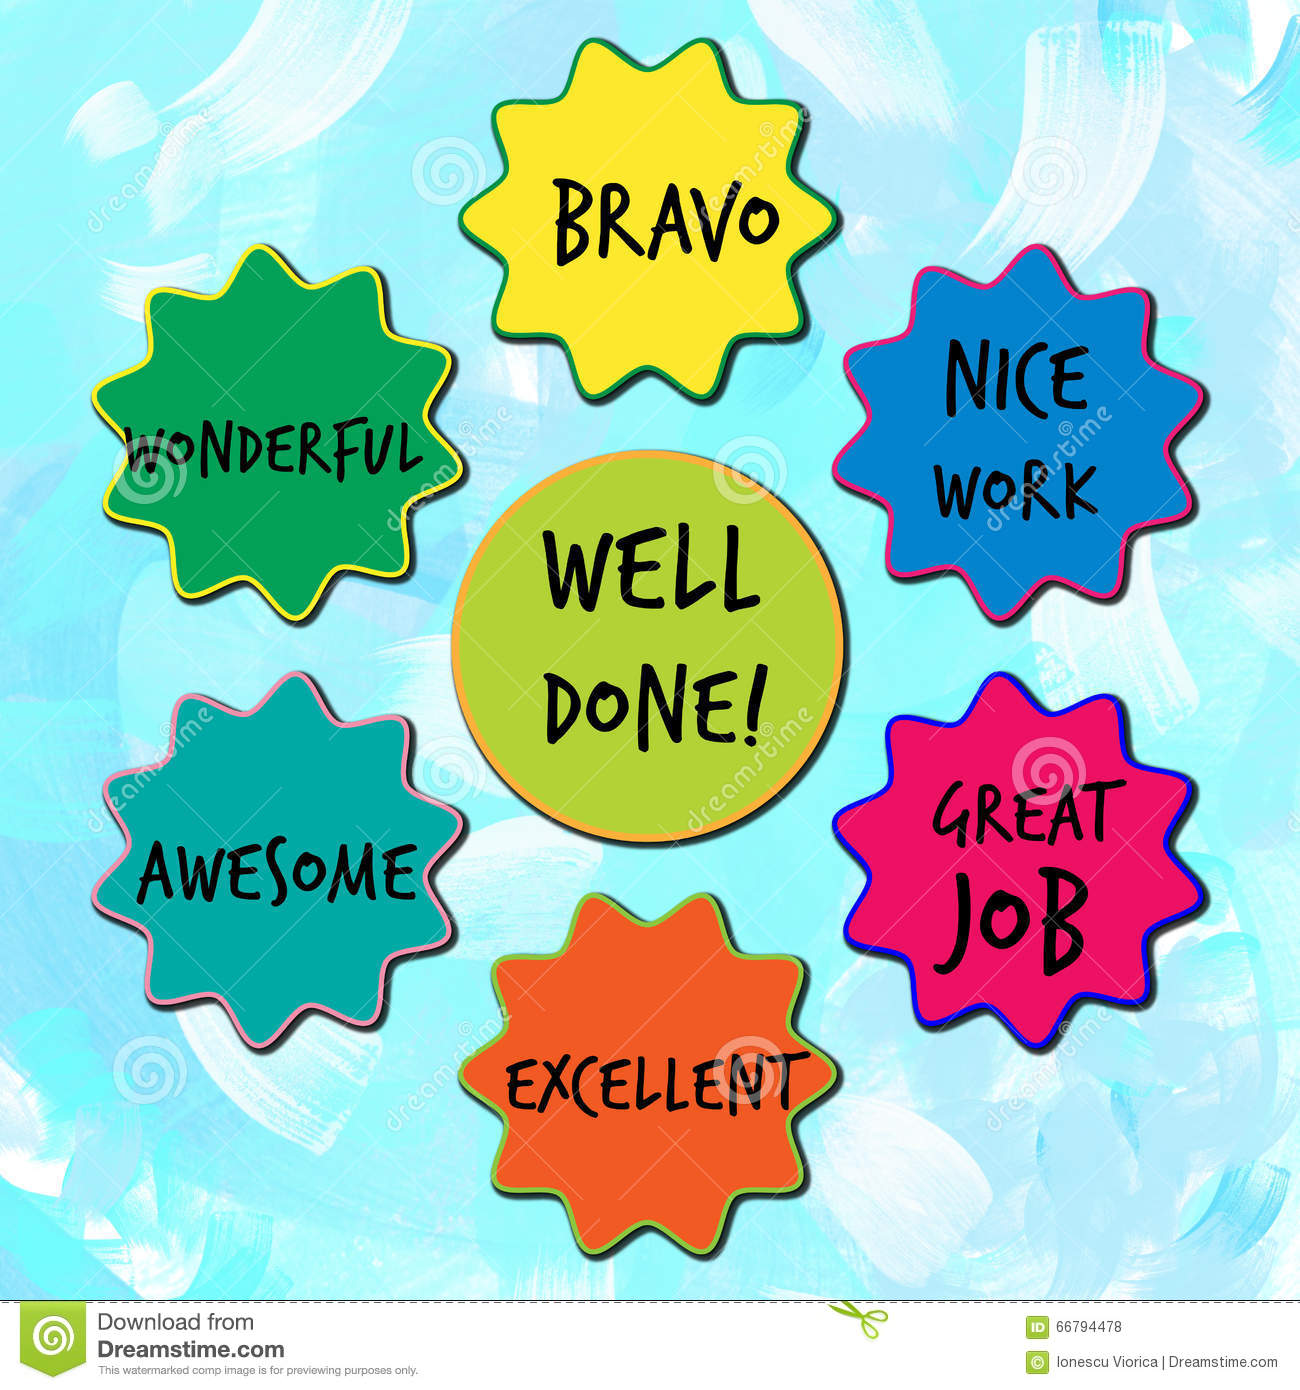 Appreciation Quotes For Good Work Done: Well Done Appreciation Messages For Children Stock